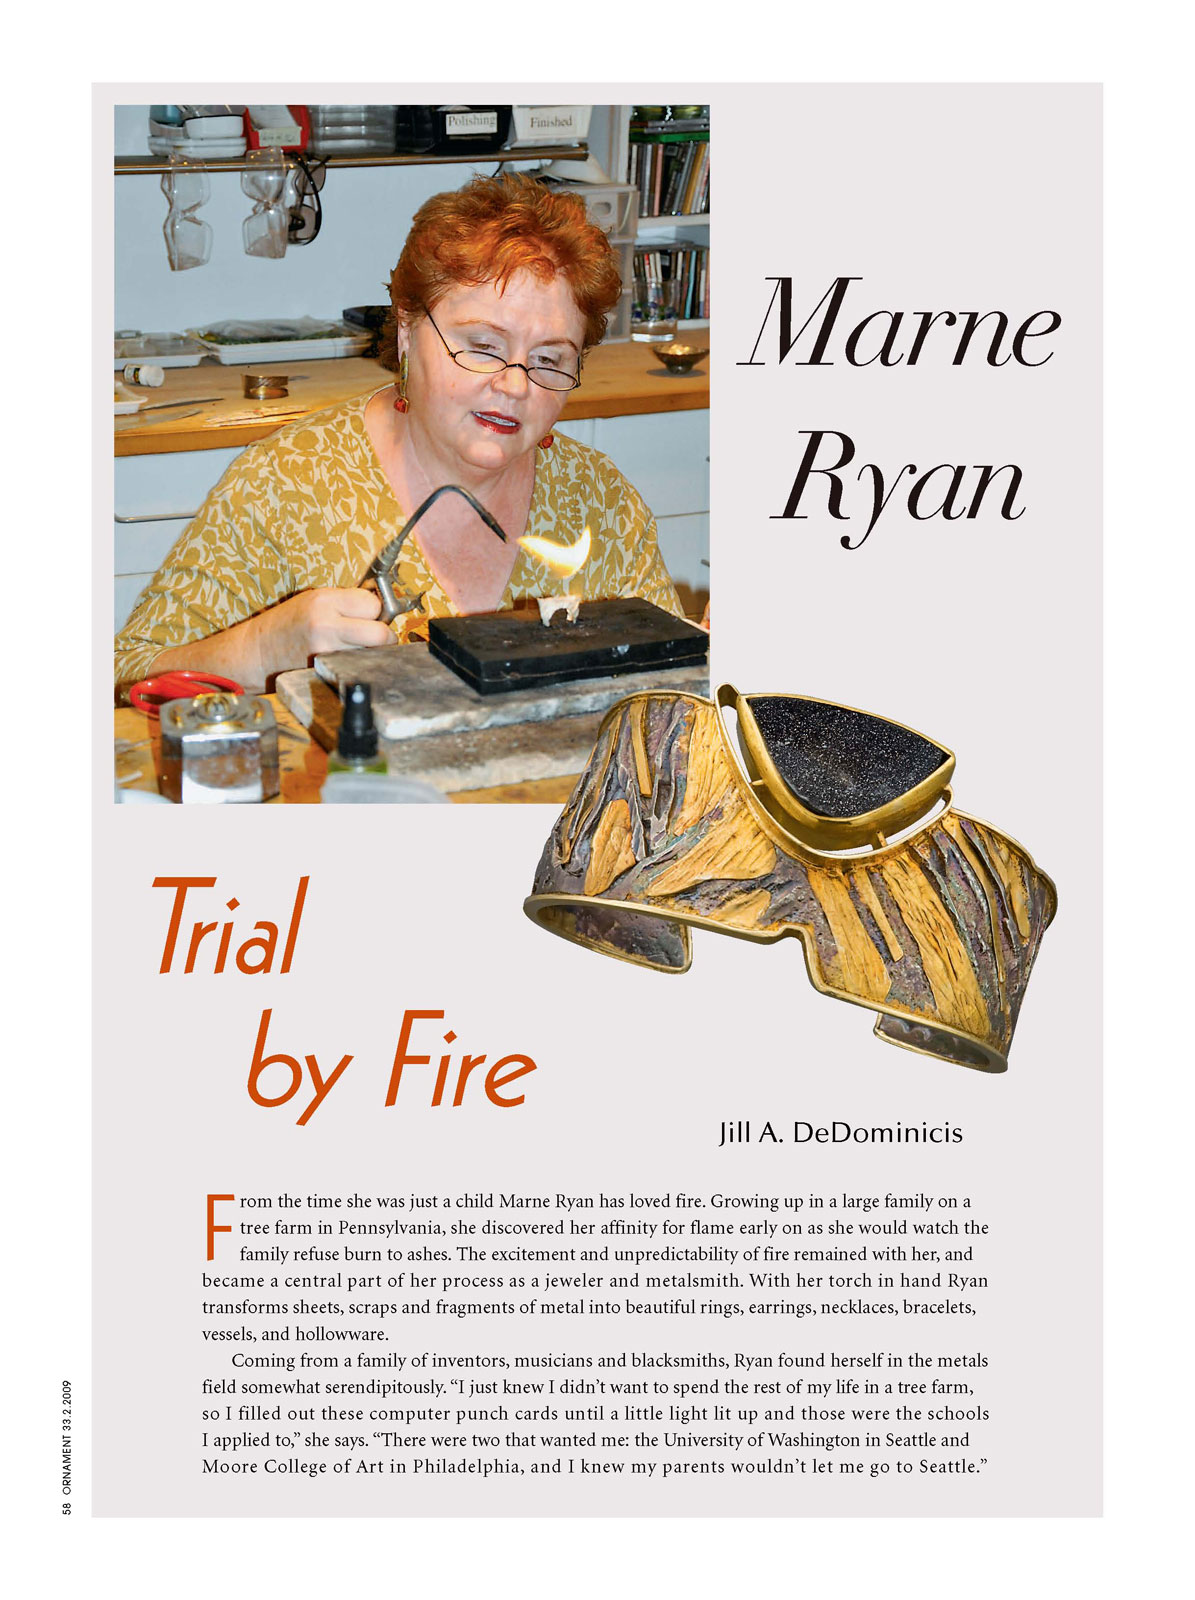 Orn33_2_MarneRyan_Cover.jpg